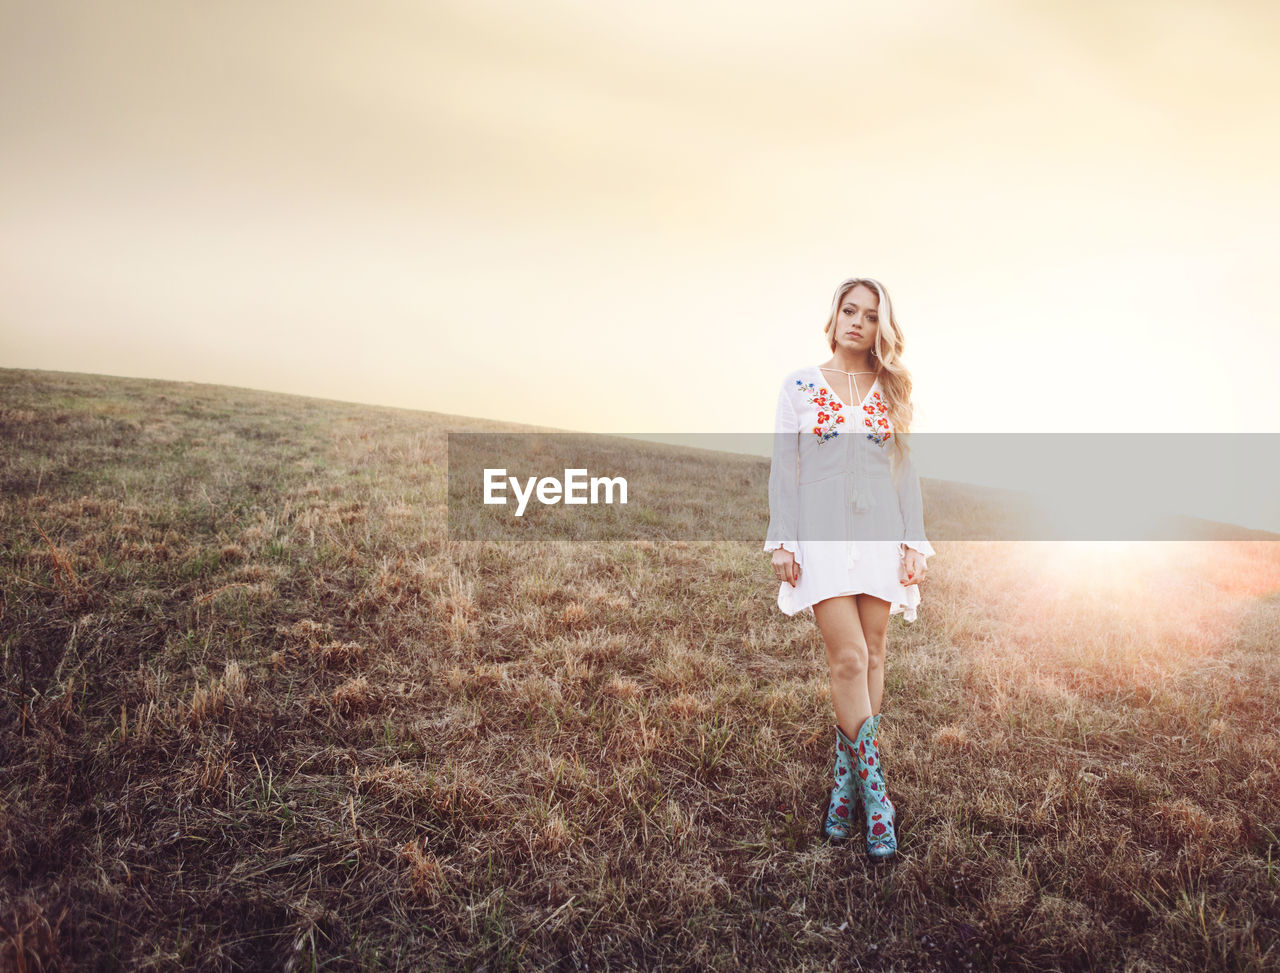 one person, front view, full length, real people, standing, nature, grass, outdoors, lifestyles, sunset, young adult, leisure activity, walking, casual clothing, field, looking at camera, sunlight, beautiful woman, portrait, landscape, young women, happiness, day, sky, clear sky, beauty in nature, blond hair, adult, people